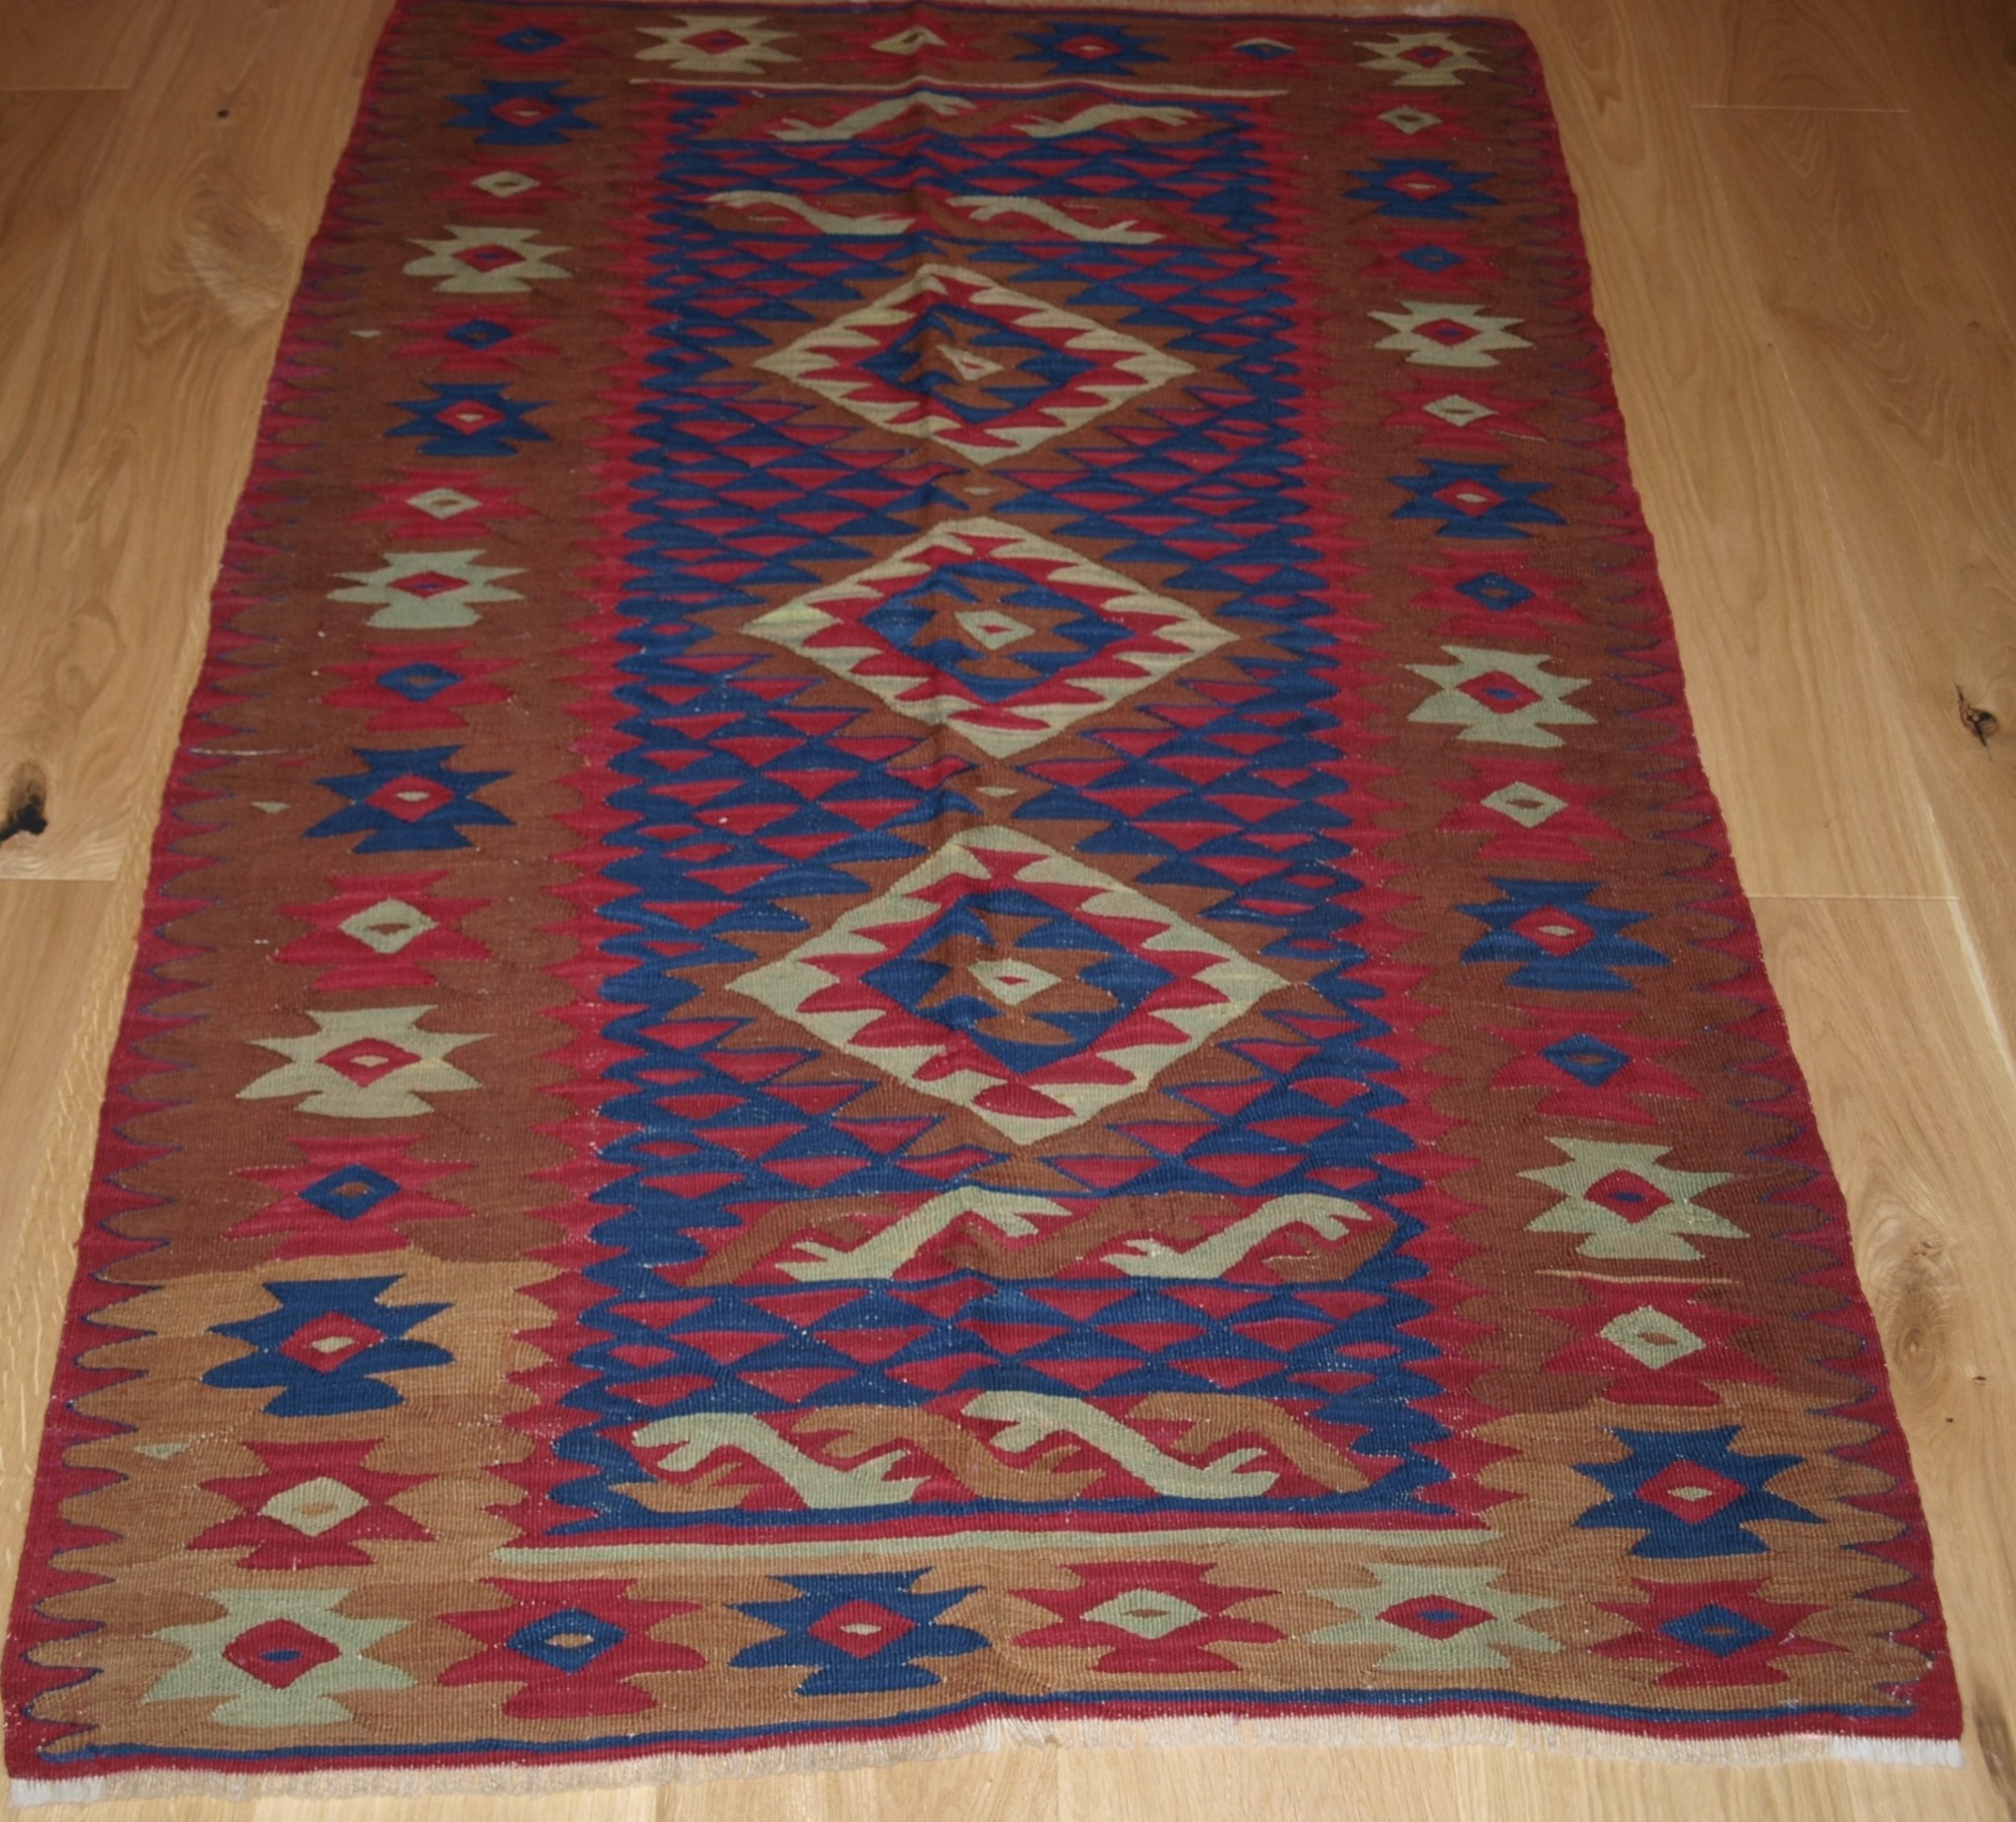 old sharkoy kilim small size with good colour and design circa 1920